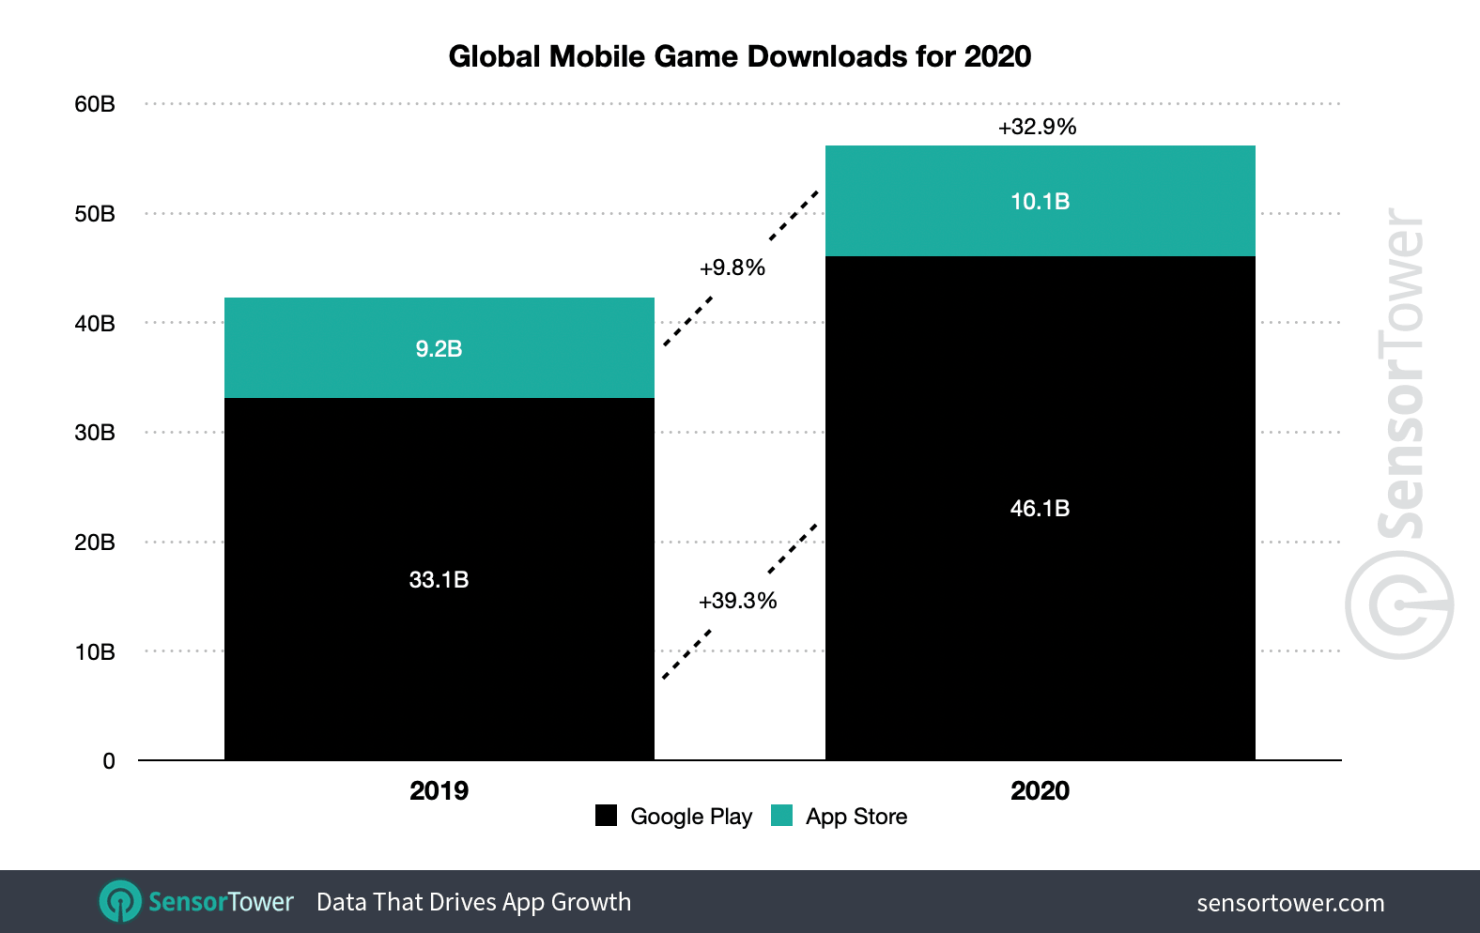 Global Mobile Game Downloads for 2020